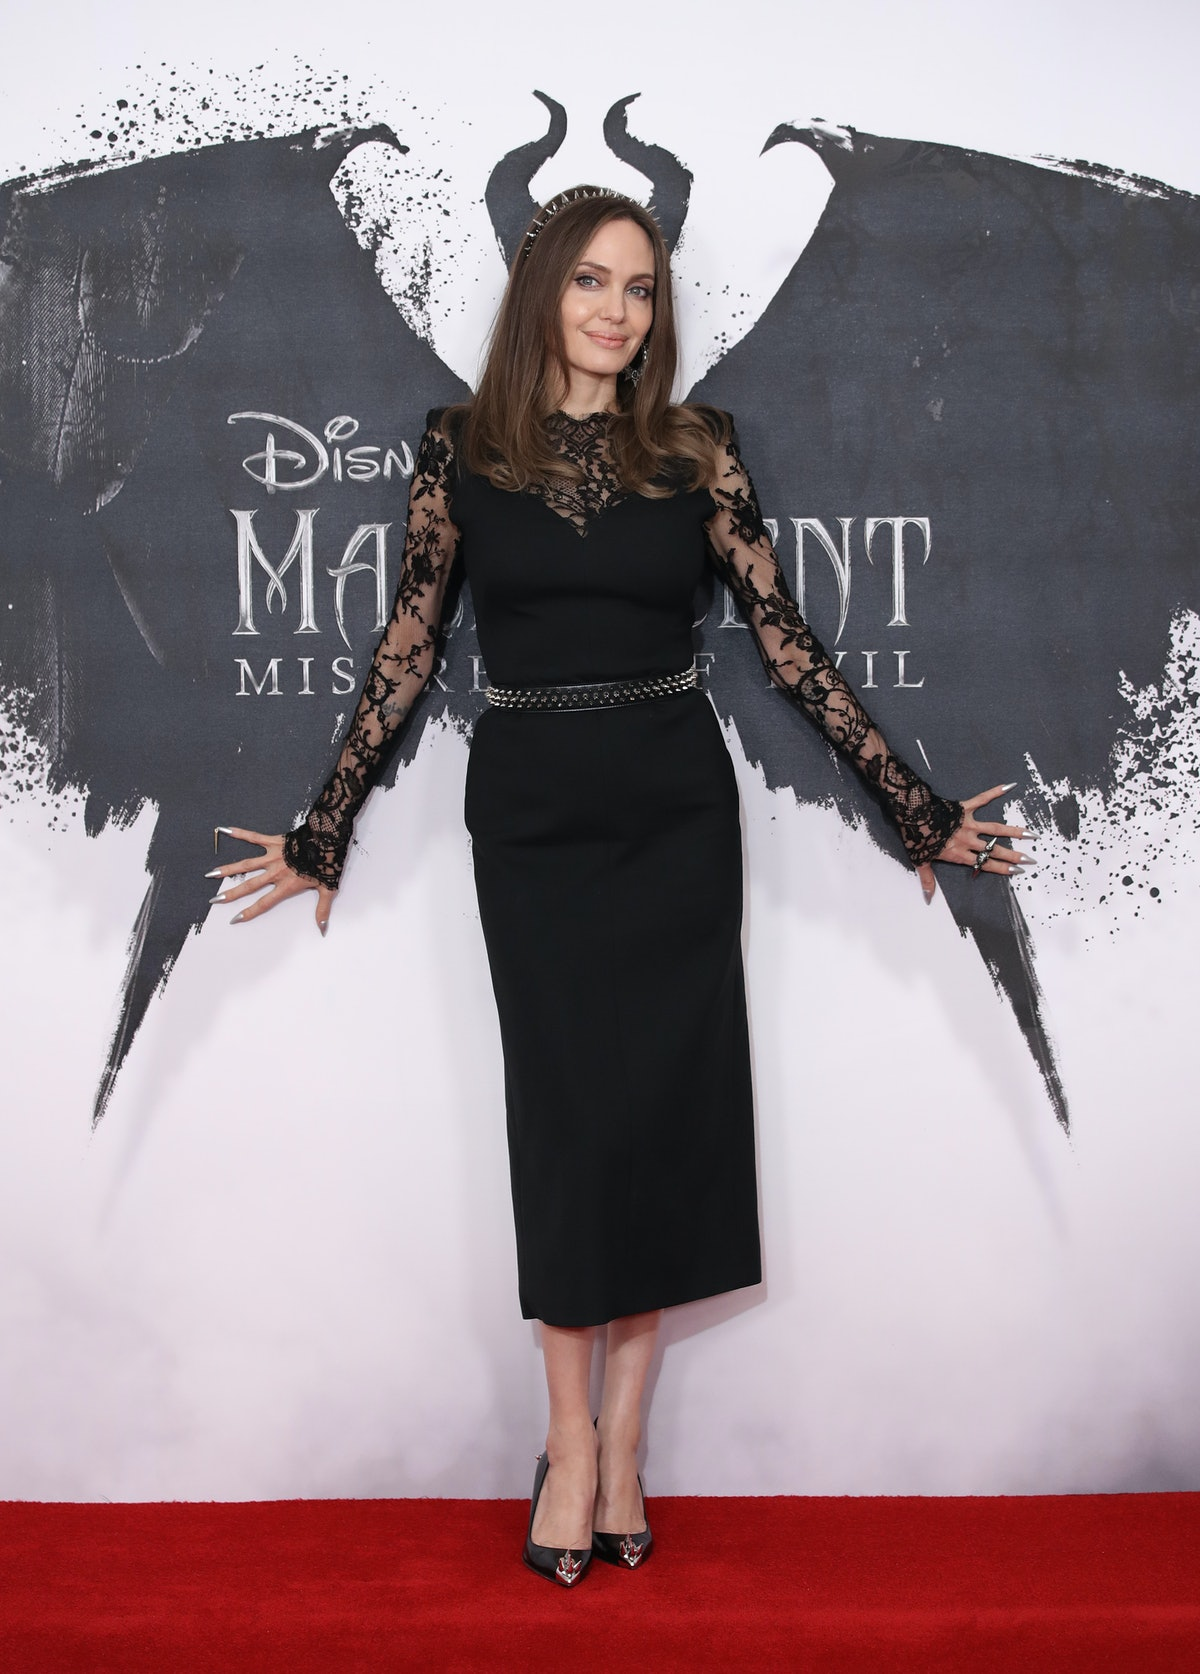 Angelina Jolie posing at a Maleficent premiere